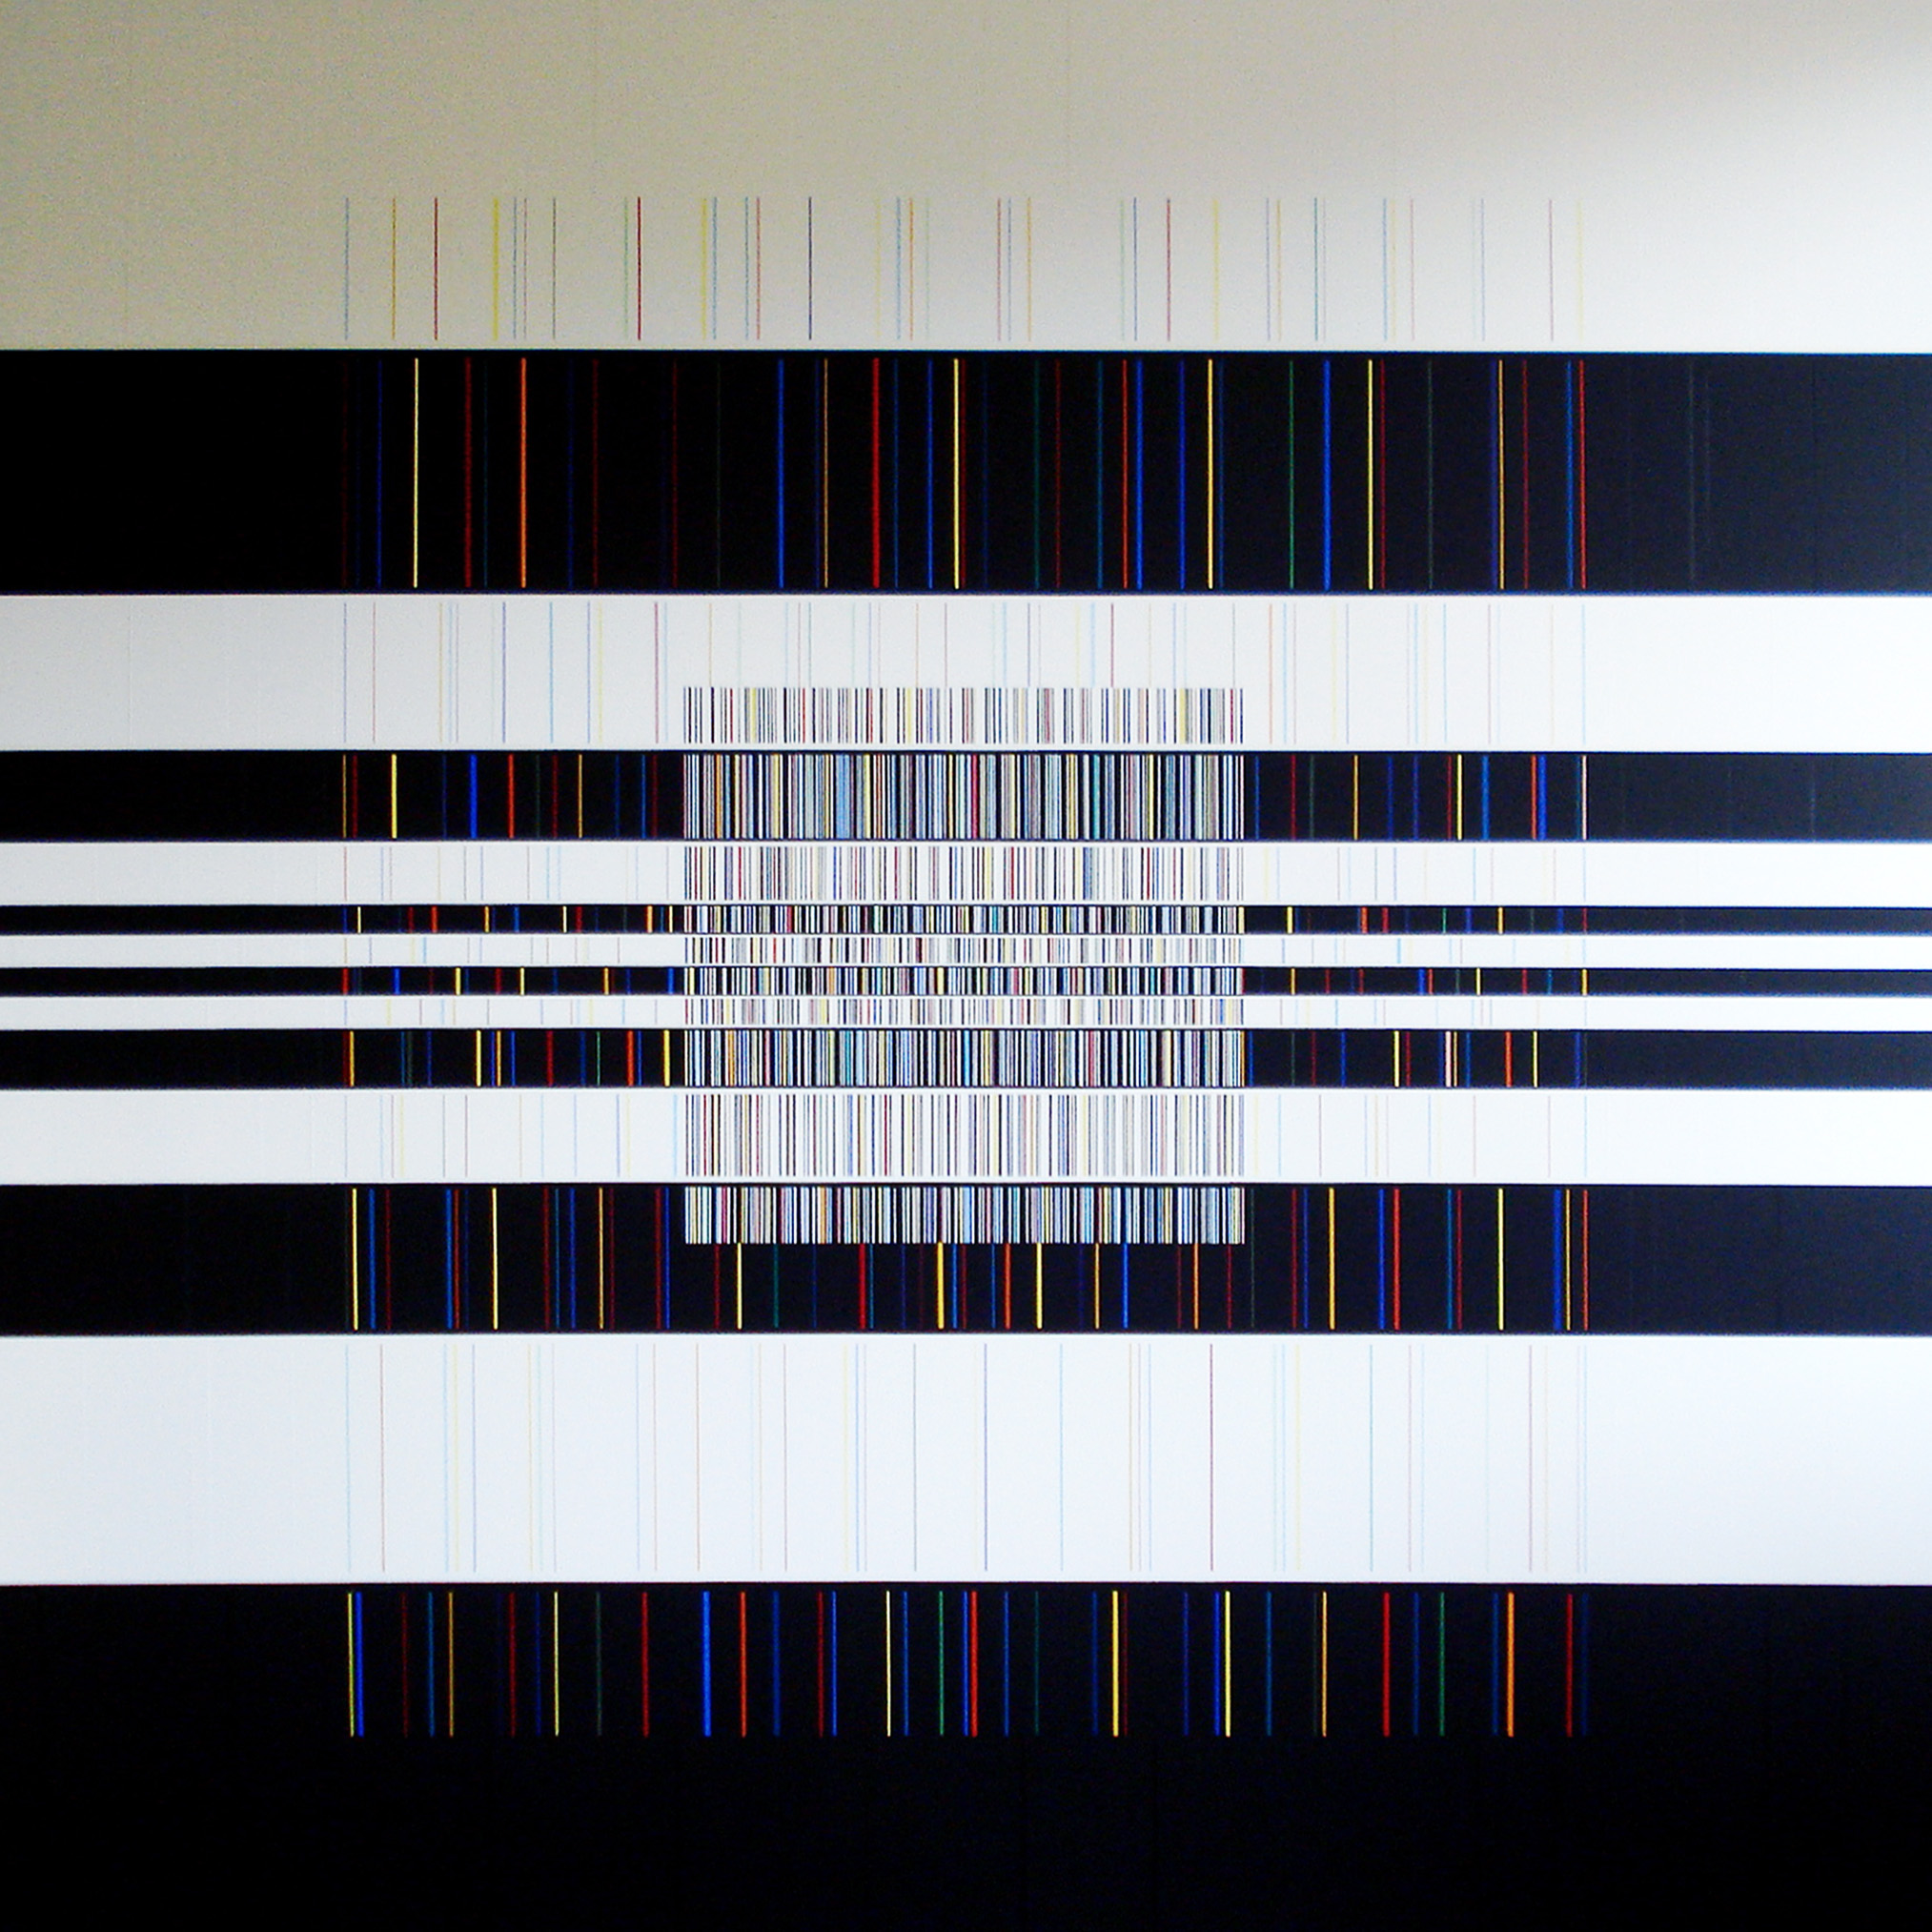 Painting 2008, acrylic on canvas, 78x78 in. [198x198cm]